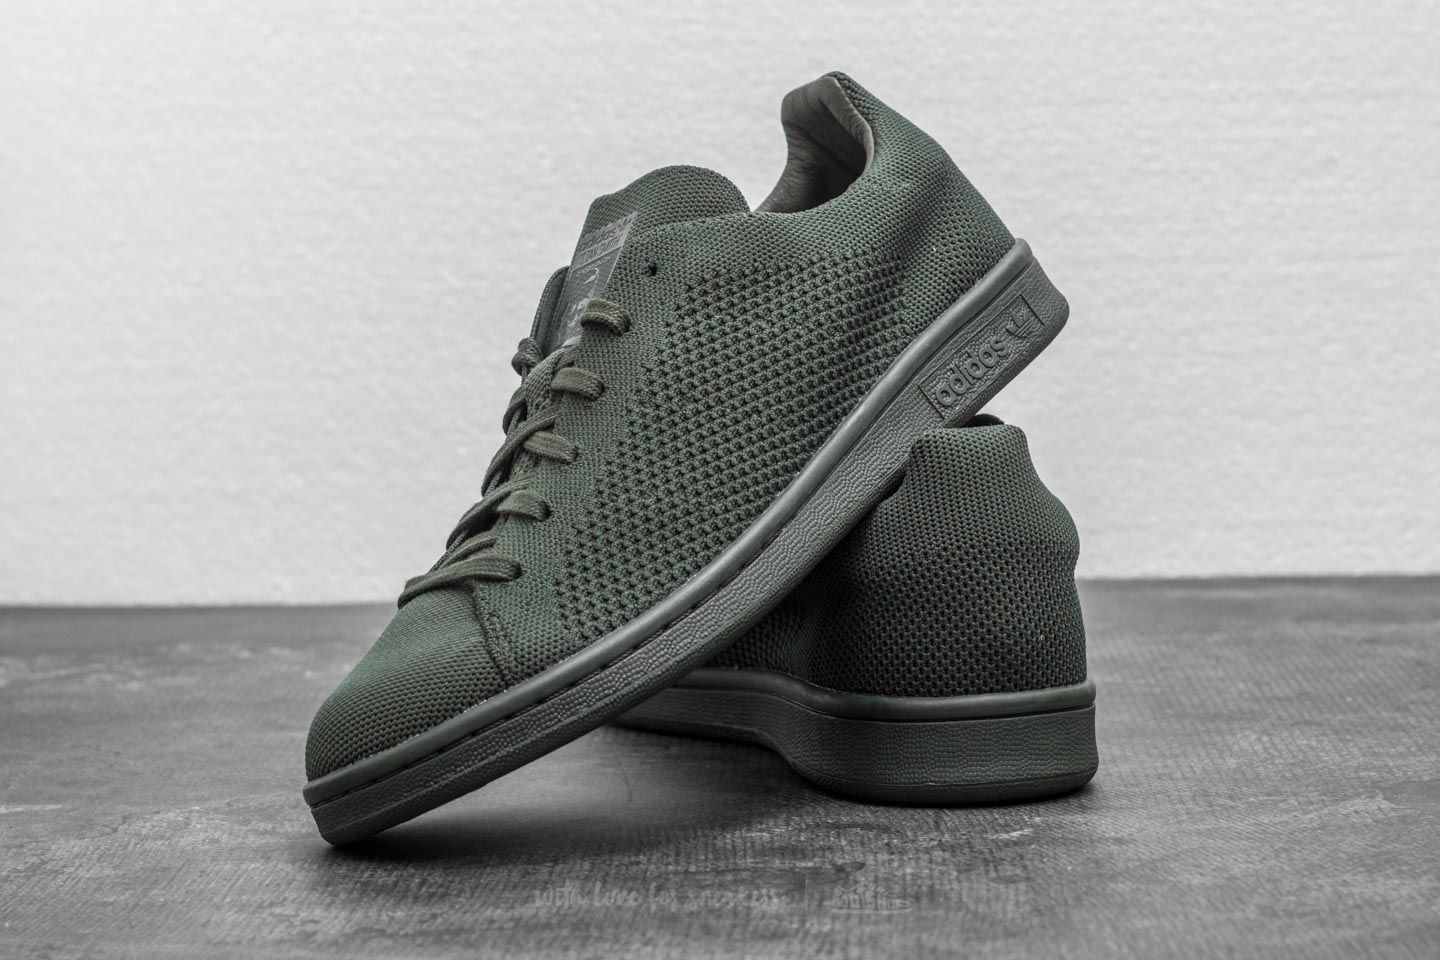 hot sale online order 100% high quality adidas Stan Smith Primeknit Night Cargo/ Night Cargo/ Night ...